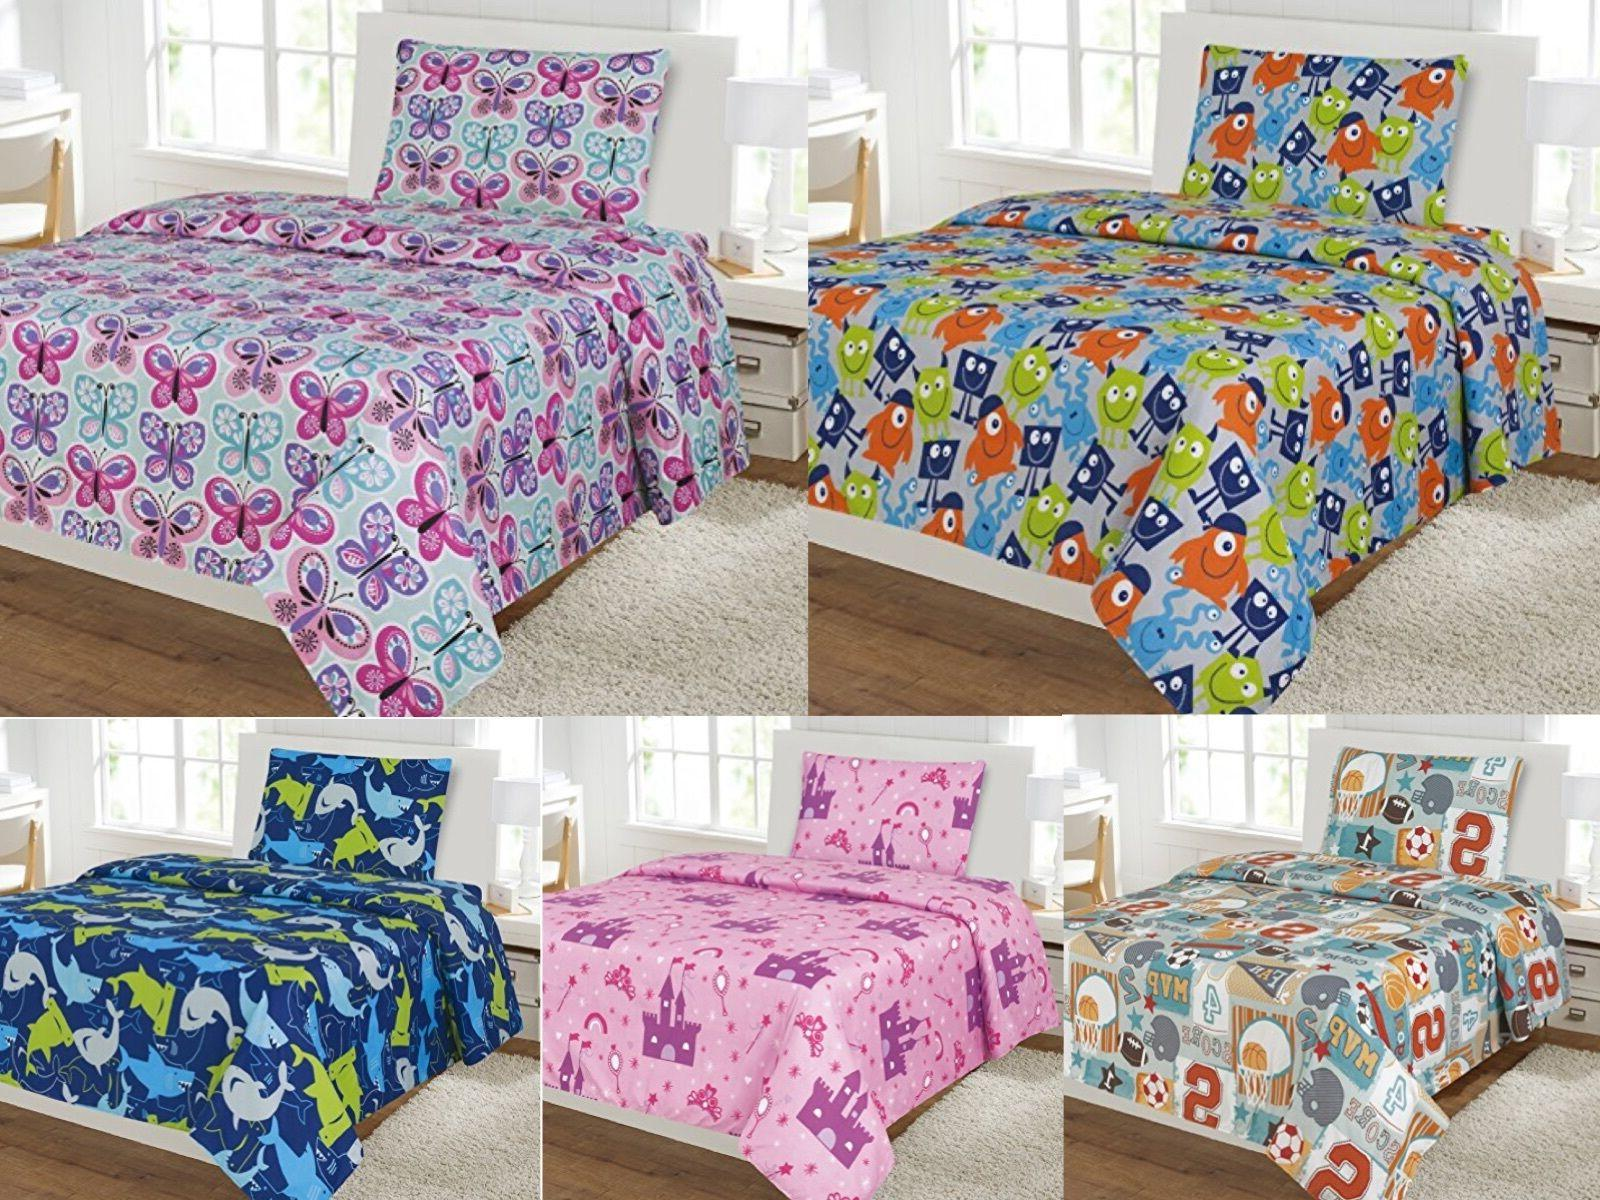 Kids 3-Piece Sheet Set Twin Size Bed Cover Flat Fitted Boys